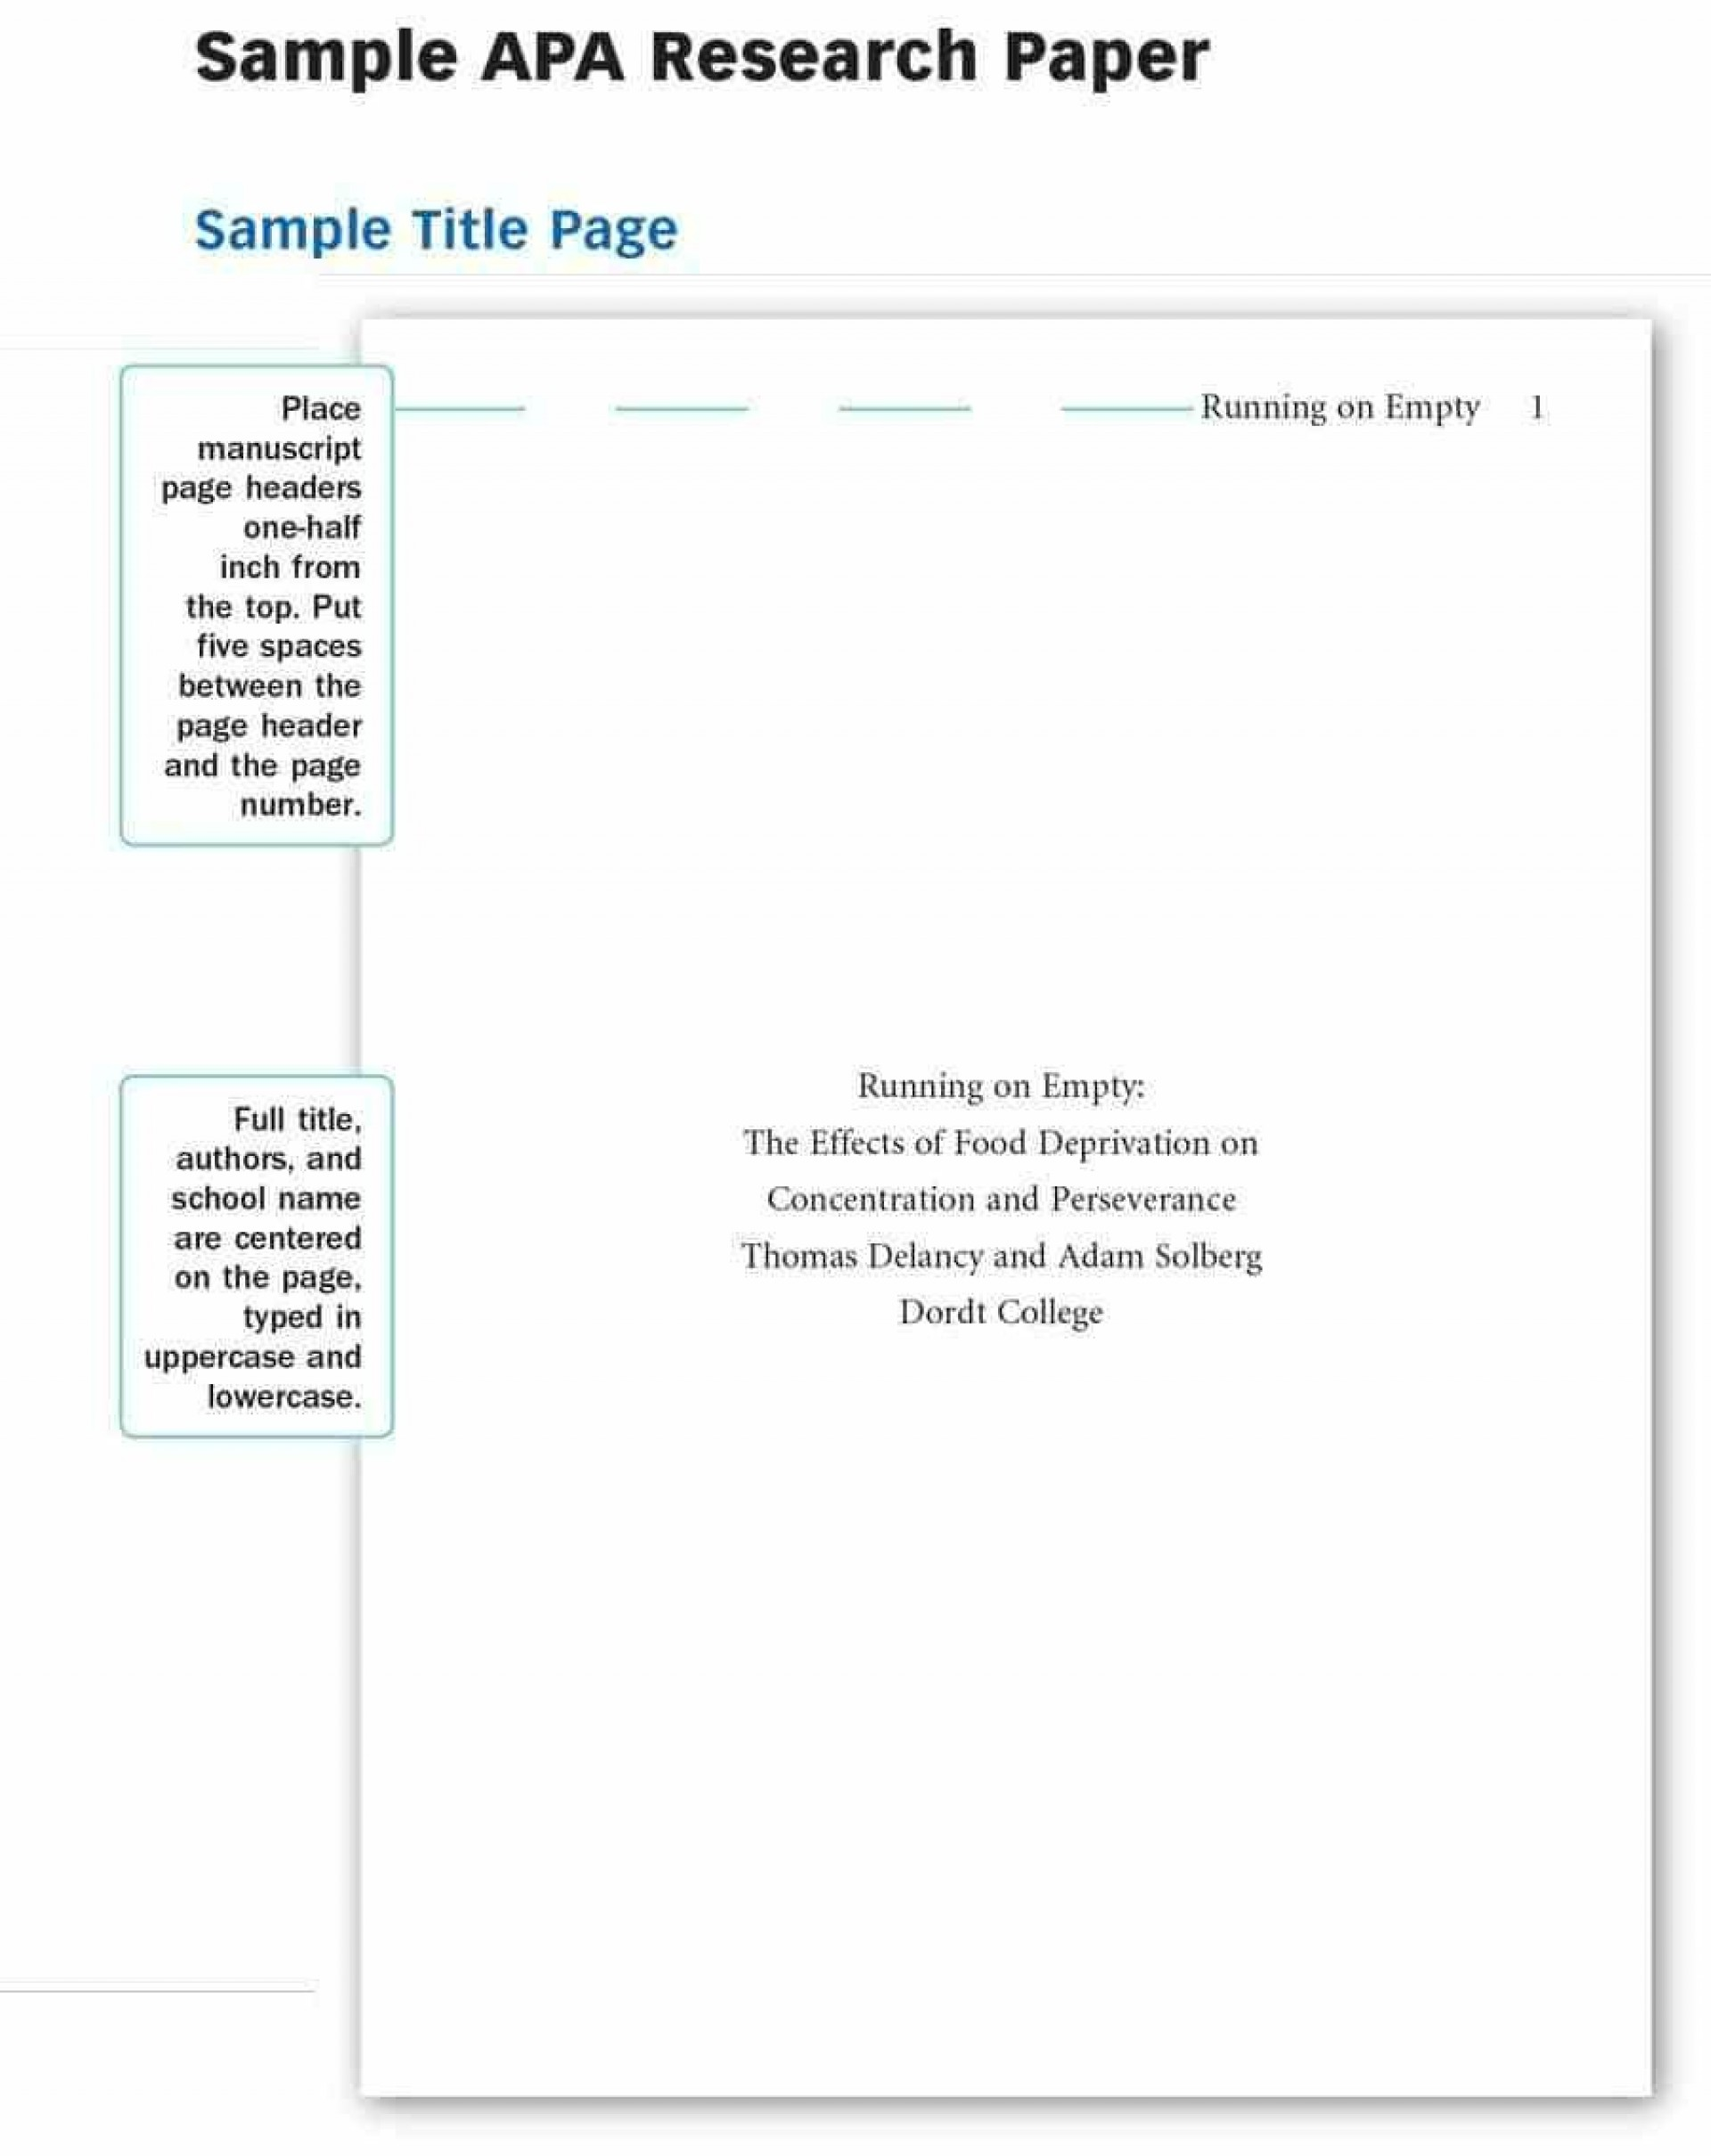 020 Apa Cover Page Template Best Of Style Art Resume Examples Research Papermat Outlin Jpg Fit Astounding Format For Paper Proper Title Layout A Example 1920